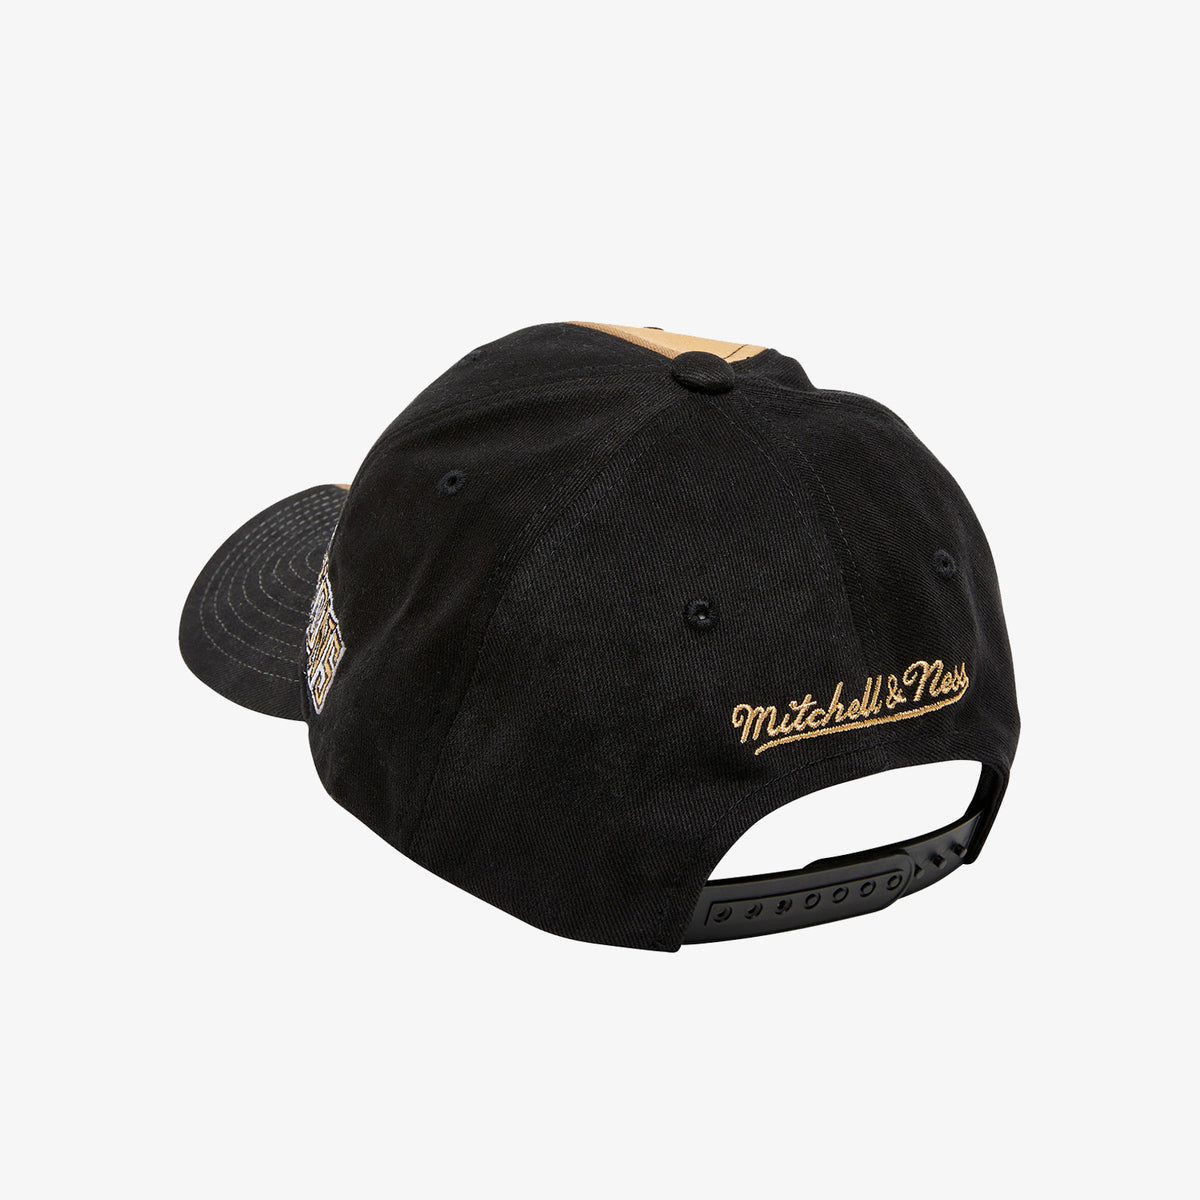 Chicago Bulls '97 Champs Last Dance Snapback - Black/Gold